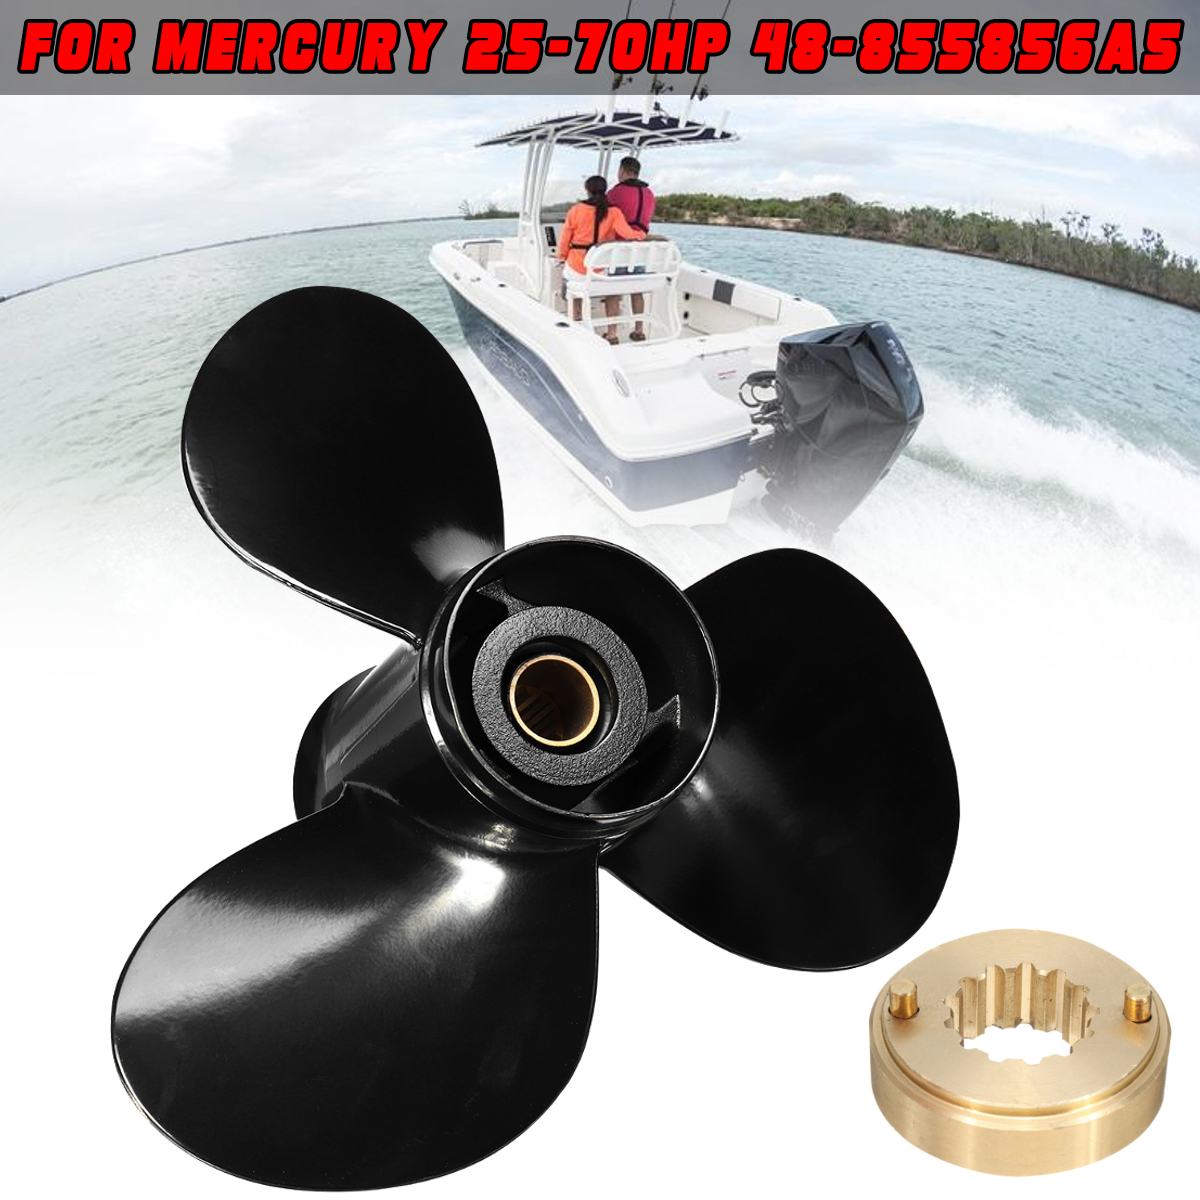 48 855856A5 11 3 8 x 12 Boat Outboard Propeller Aluminum Alloy Fit for Mercury 25